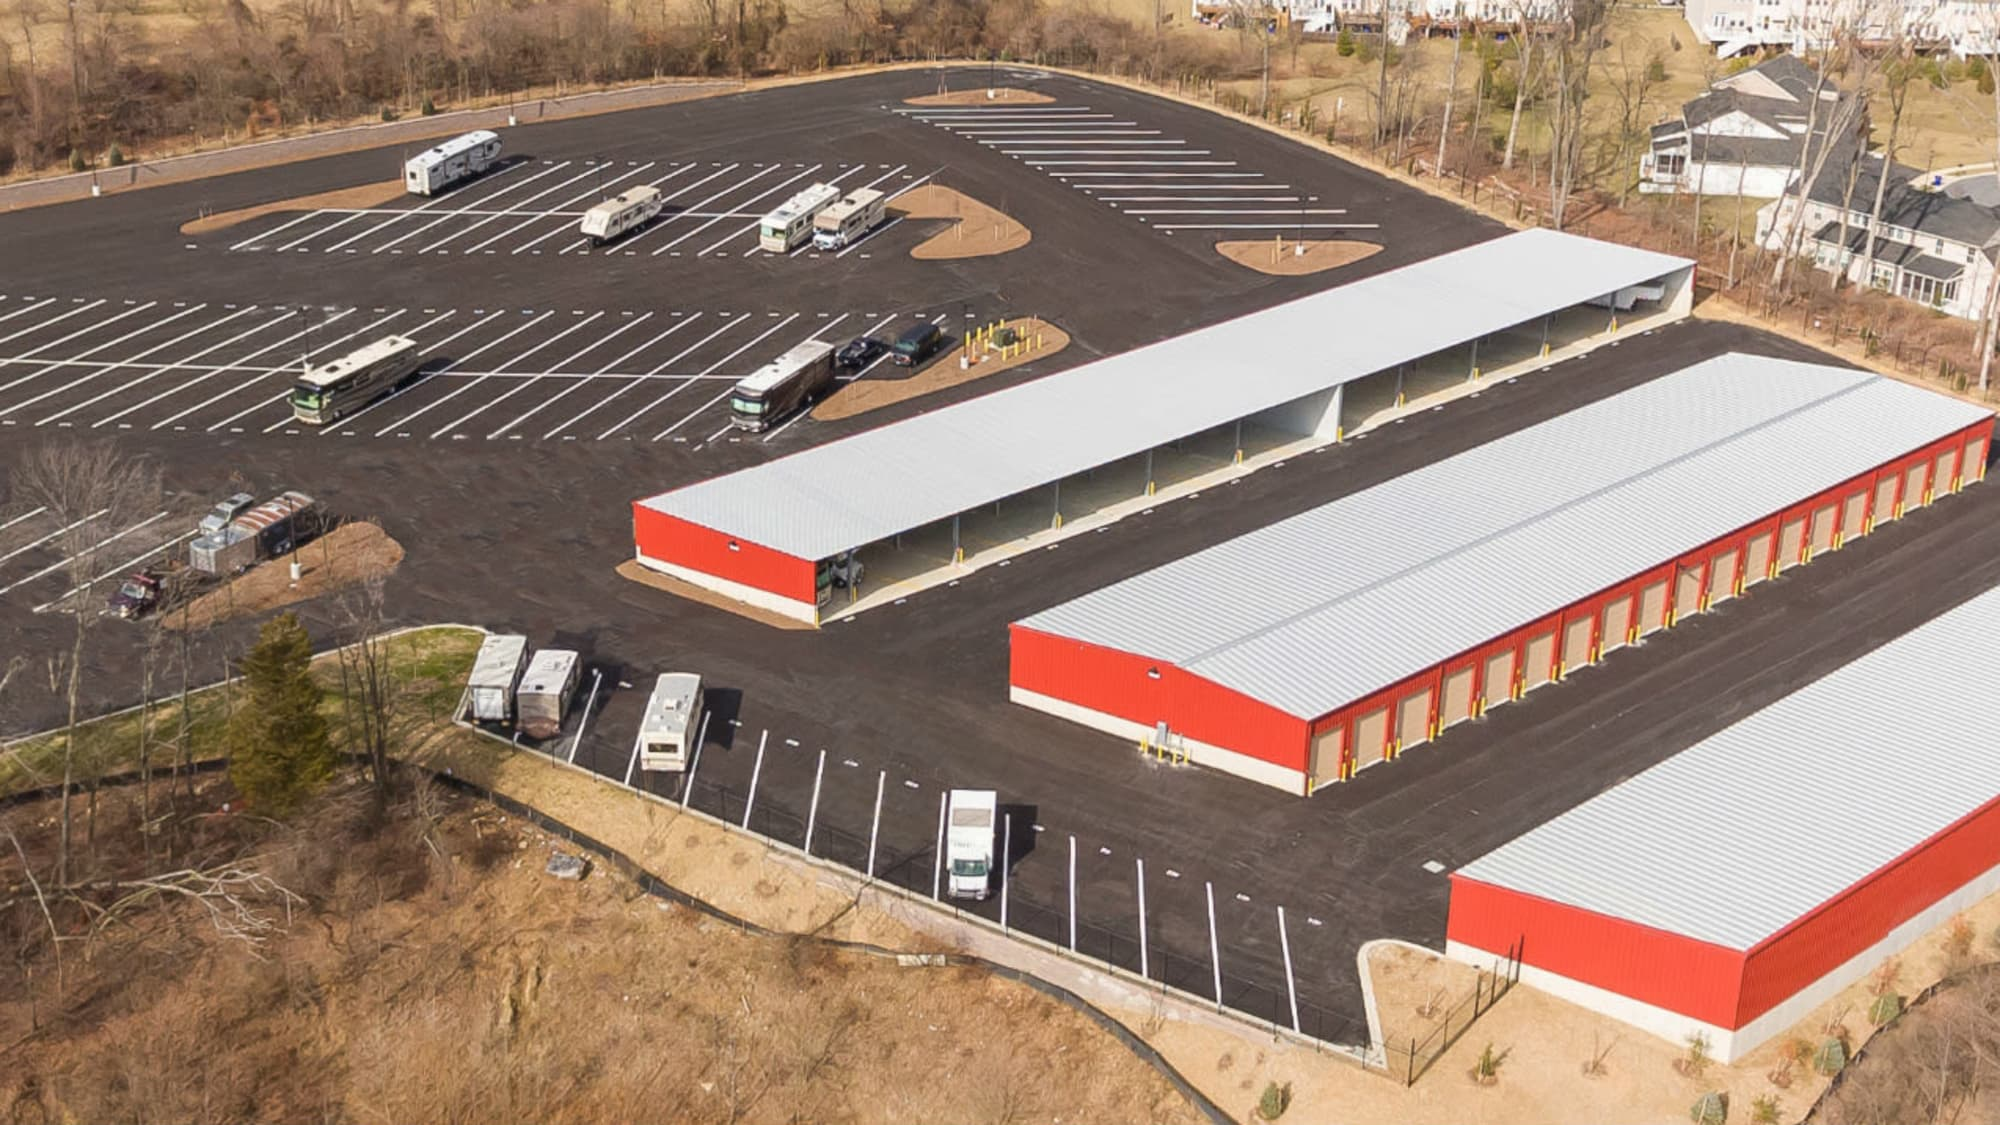 View of New Market Mini Storage in New Market, Maryland from above